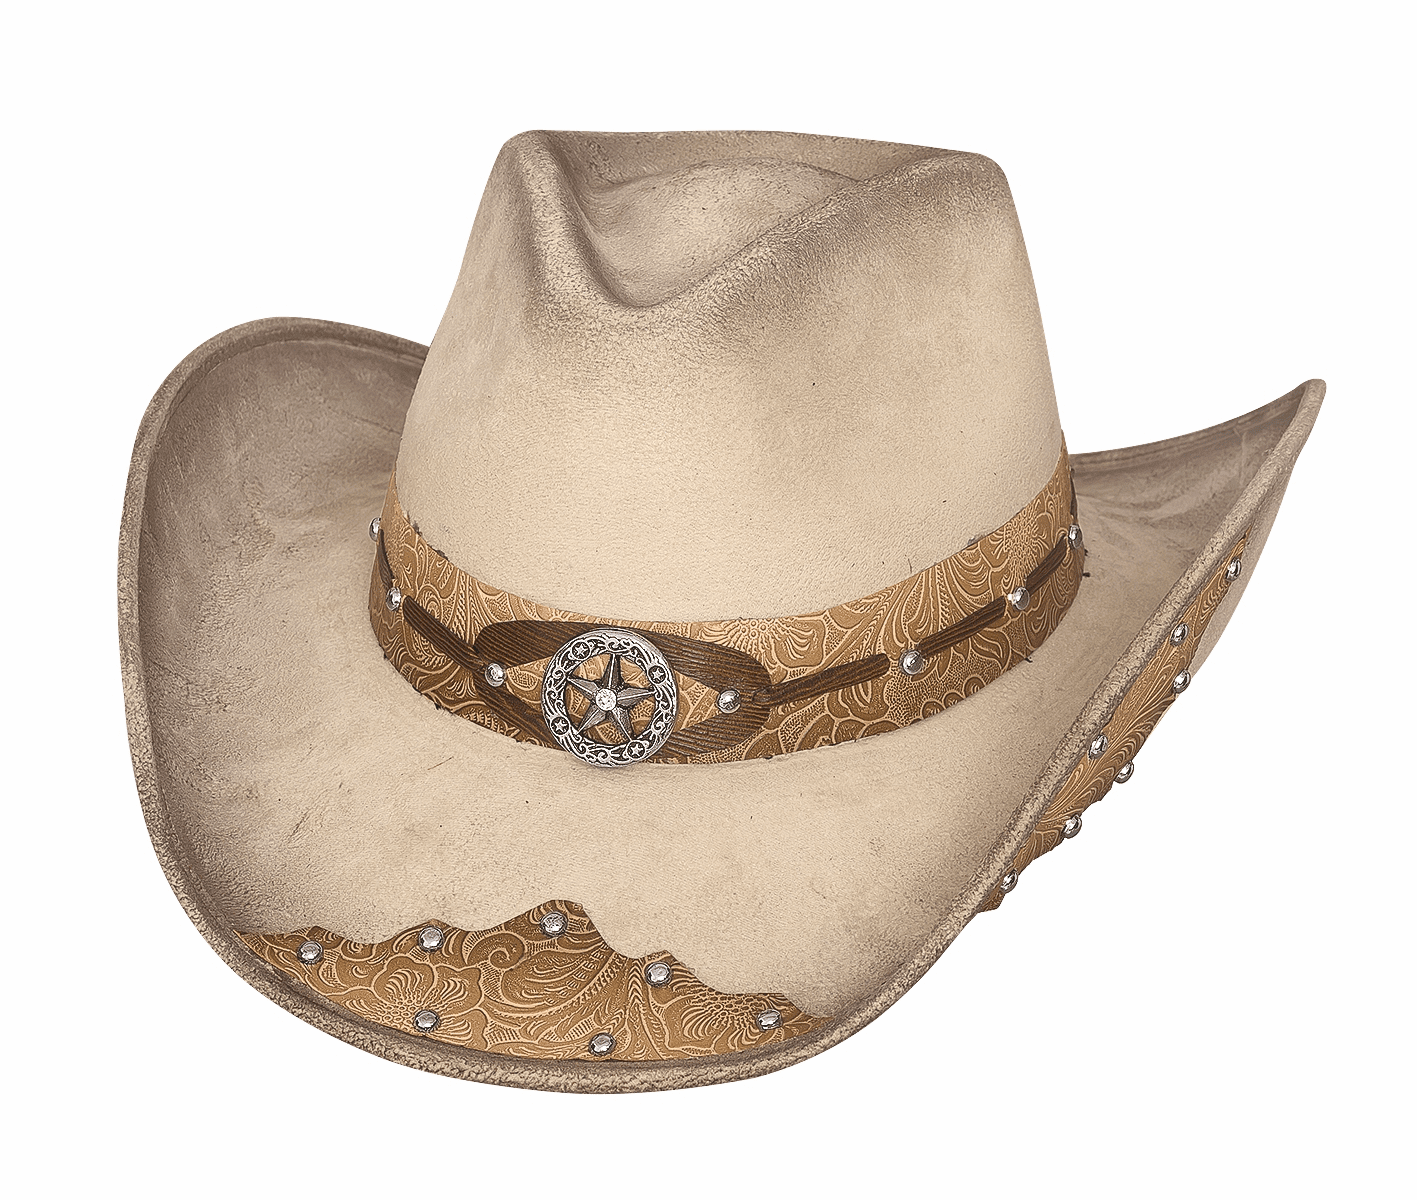 881c78d4b8ded KICK THE DUST OFF Sassy Cowgirl Hat